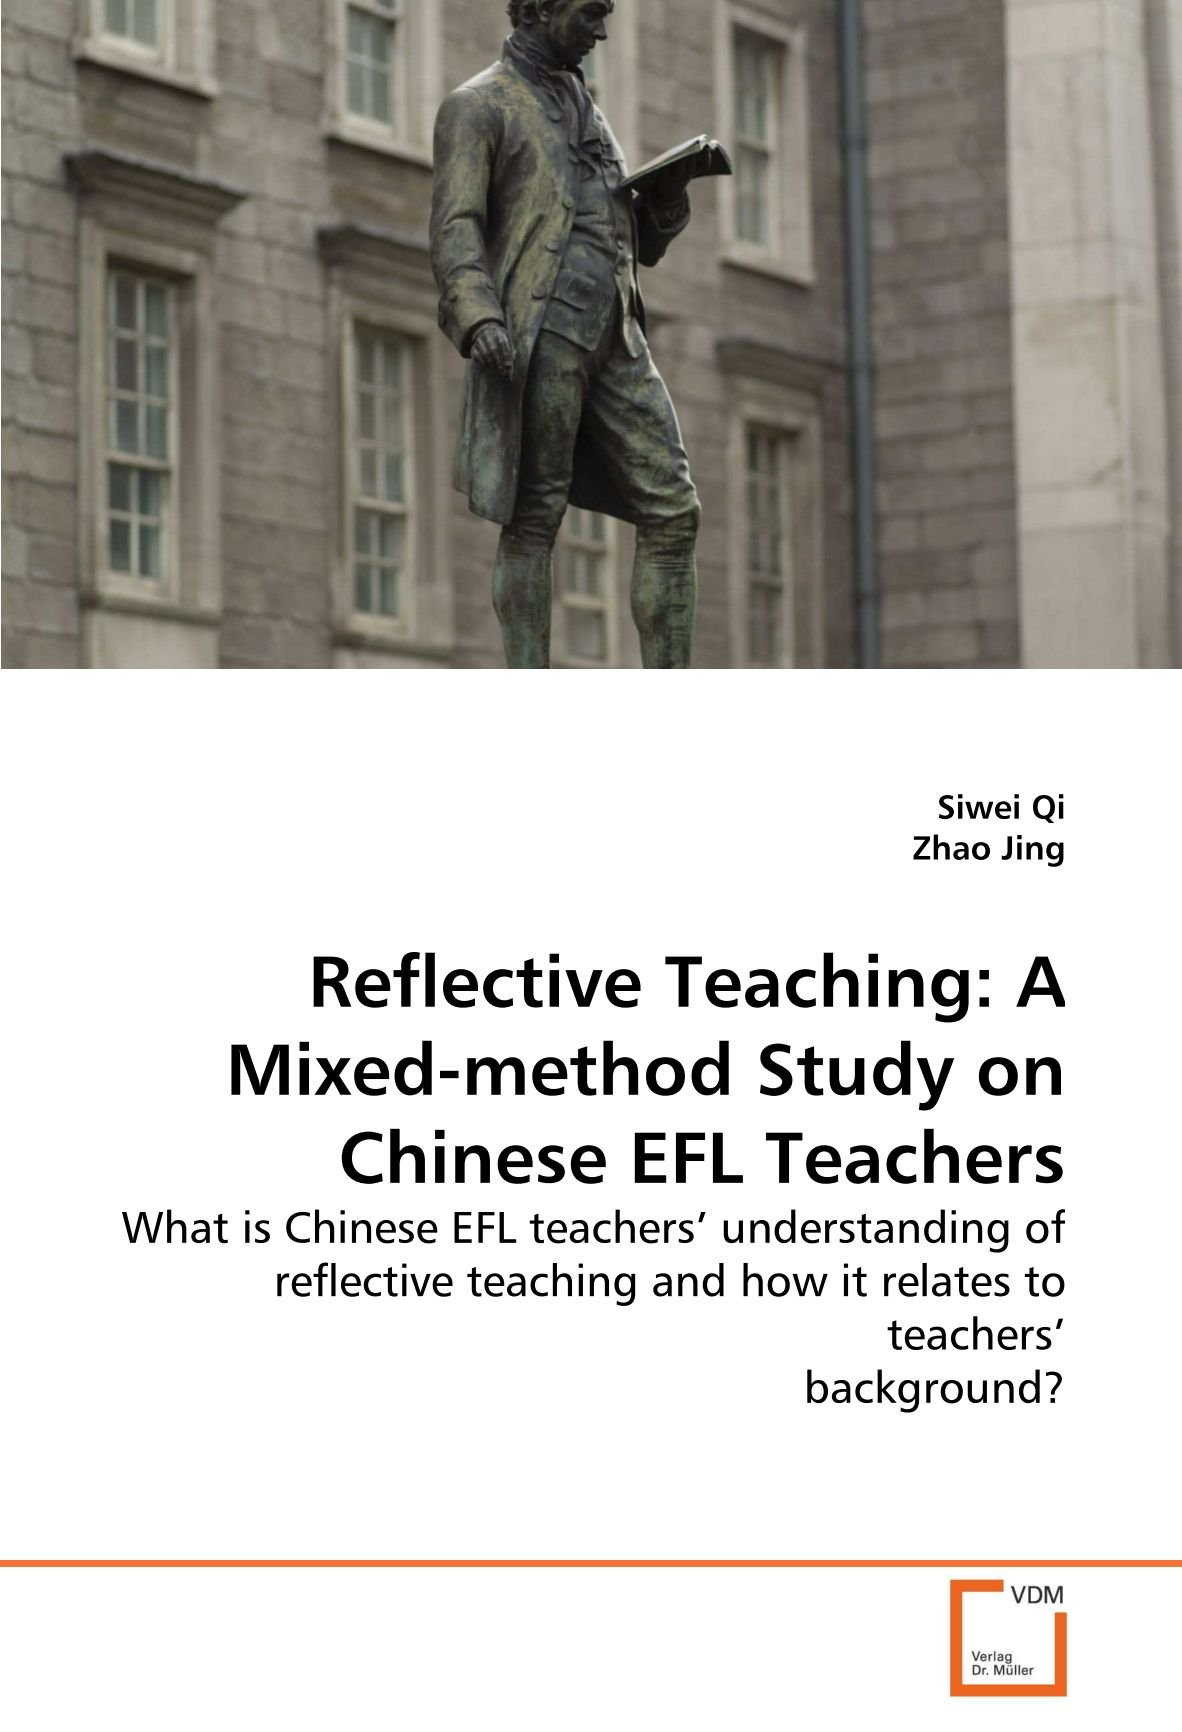 Download Reflective Teaching: A Mixed-method Study on Chinese EFL Teachers: What is Chinese EFL teachers' understanding of reflective teaching and how it relates to teachers' background? PDF